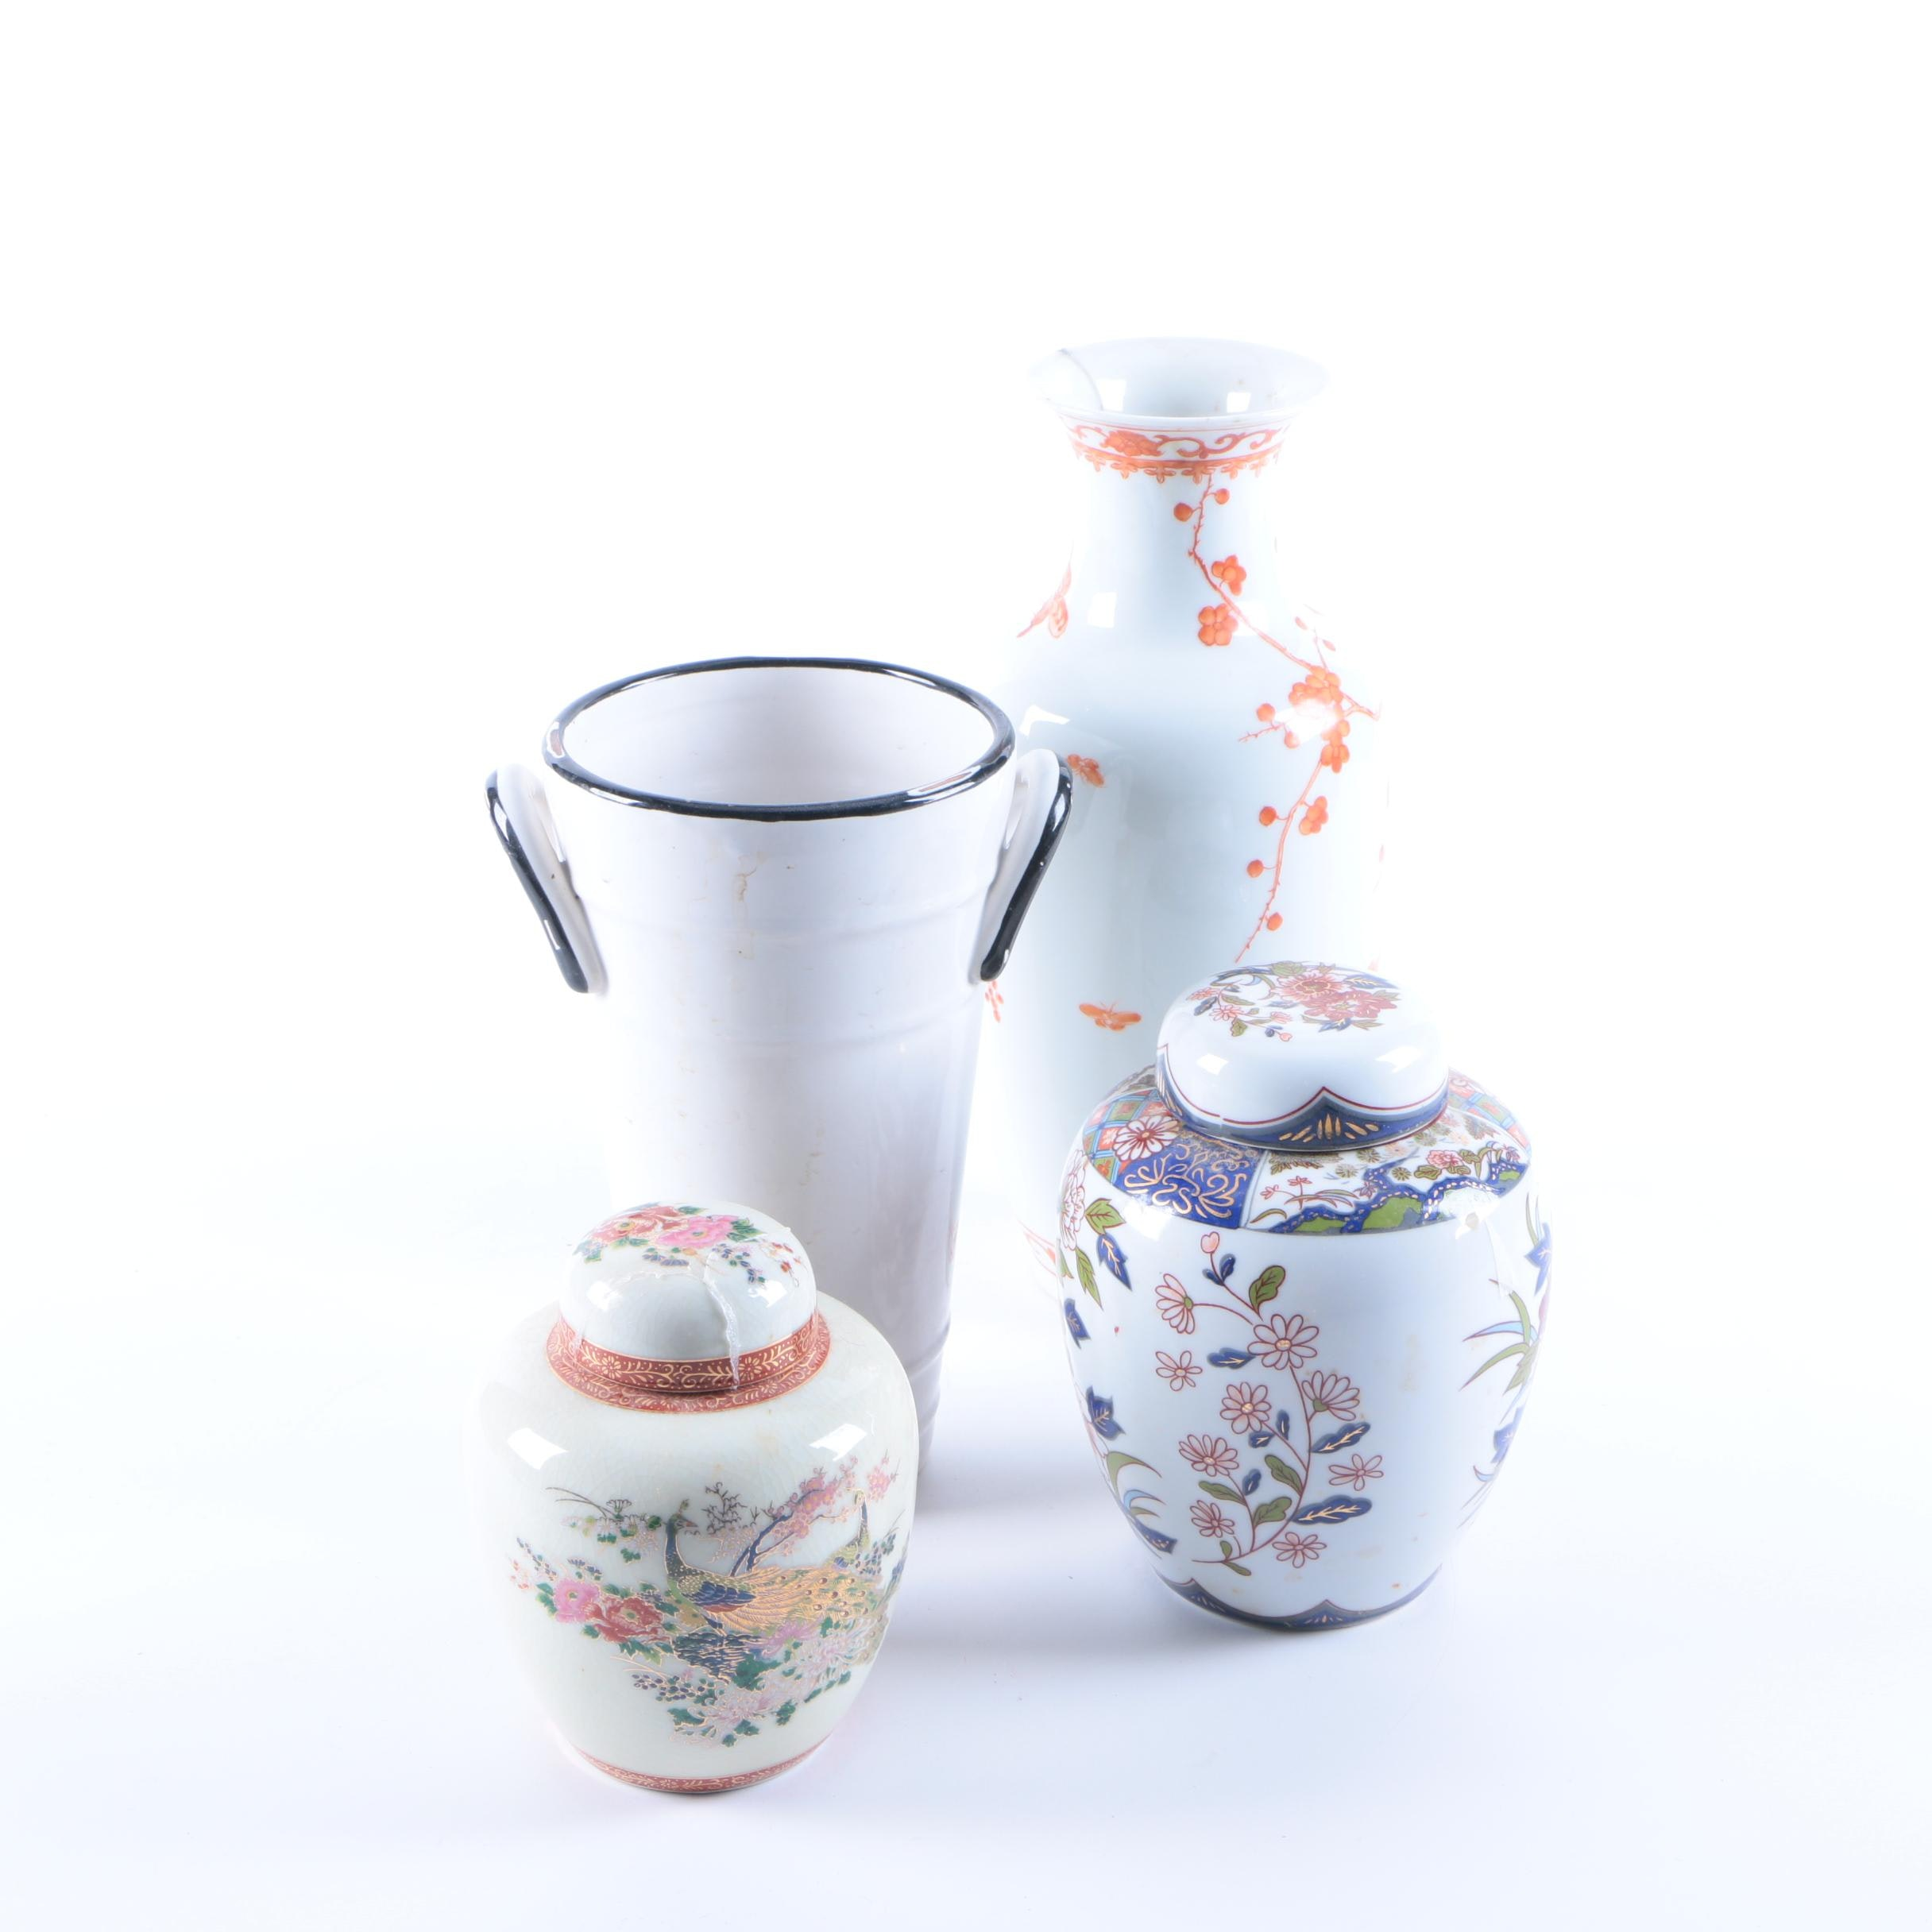 Ceramic Urns and Vases Featuring Satsuma